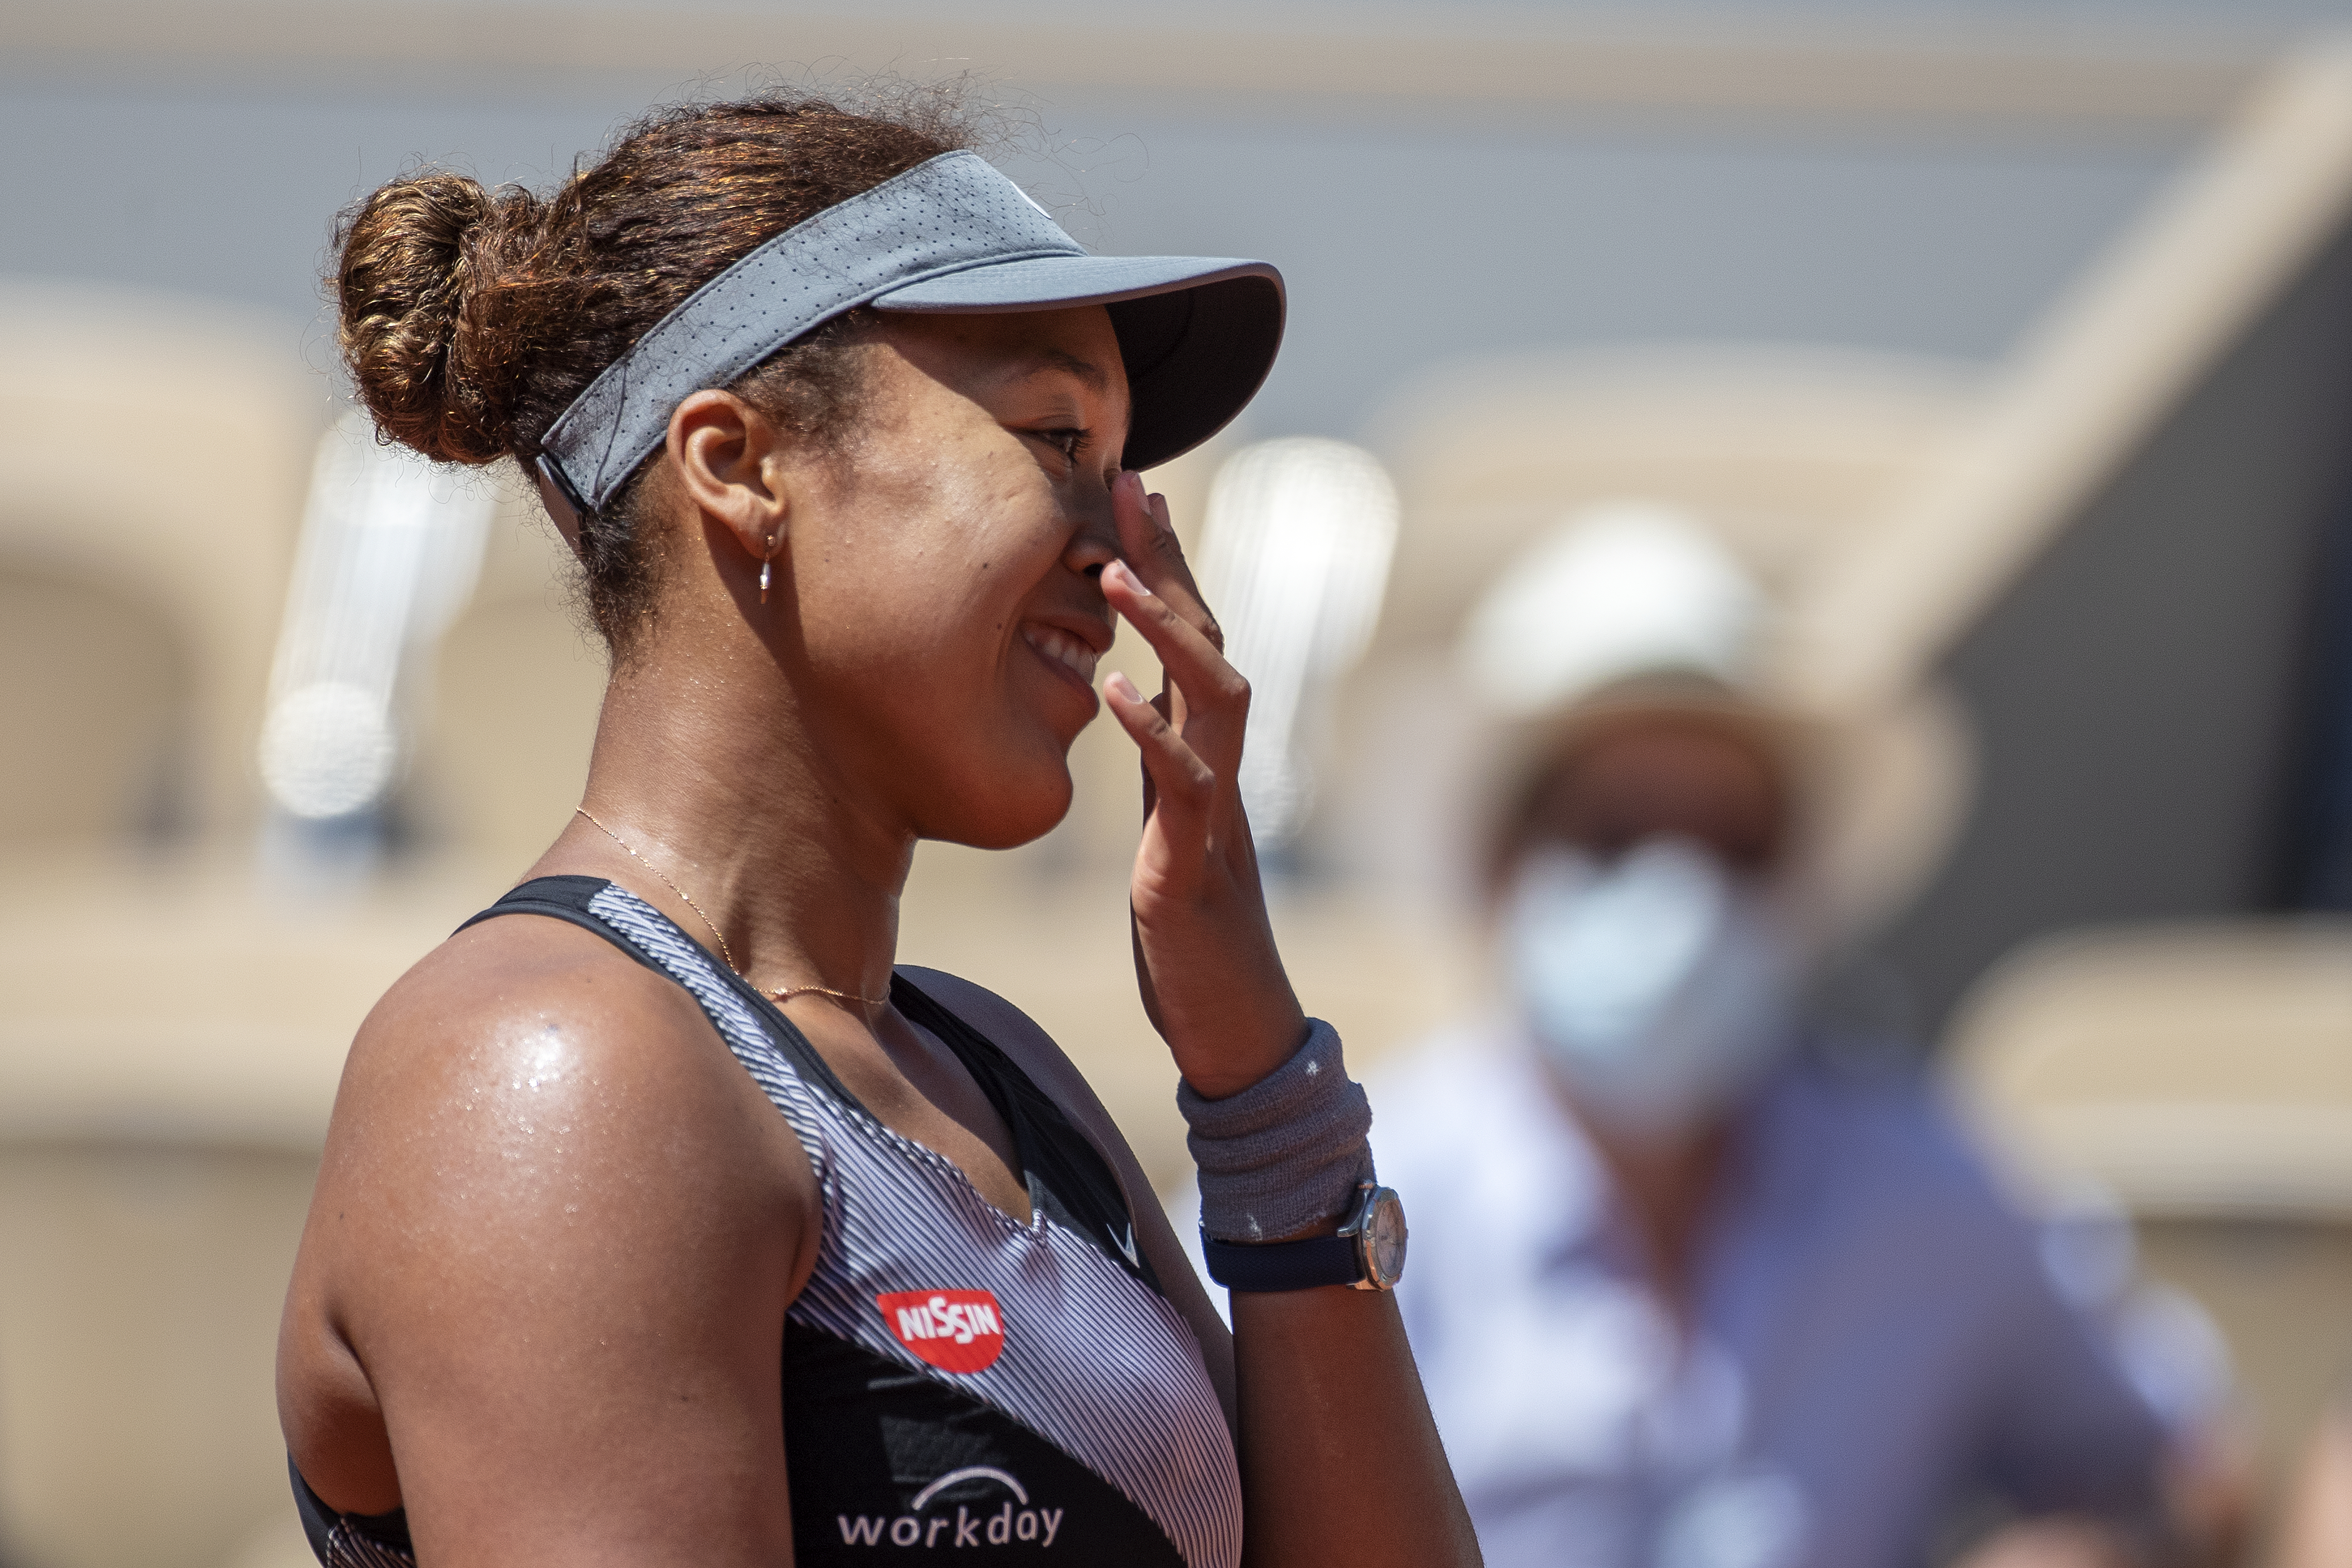 Naomi Osaka of Japan celebrates her victory against Patricia Maria Tig of Romania in the first round of the Women's Singles competition on Court Philippe-Chatrier at the 2021 French Open Tennis Tournament at Roland Garros on May 30th 2021 in Paris, France.